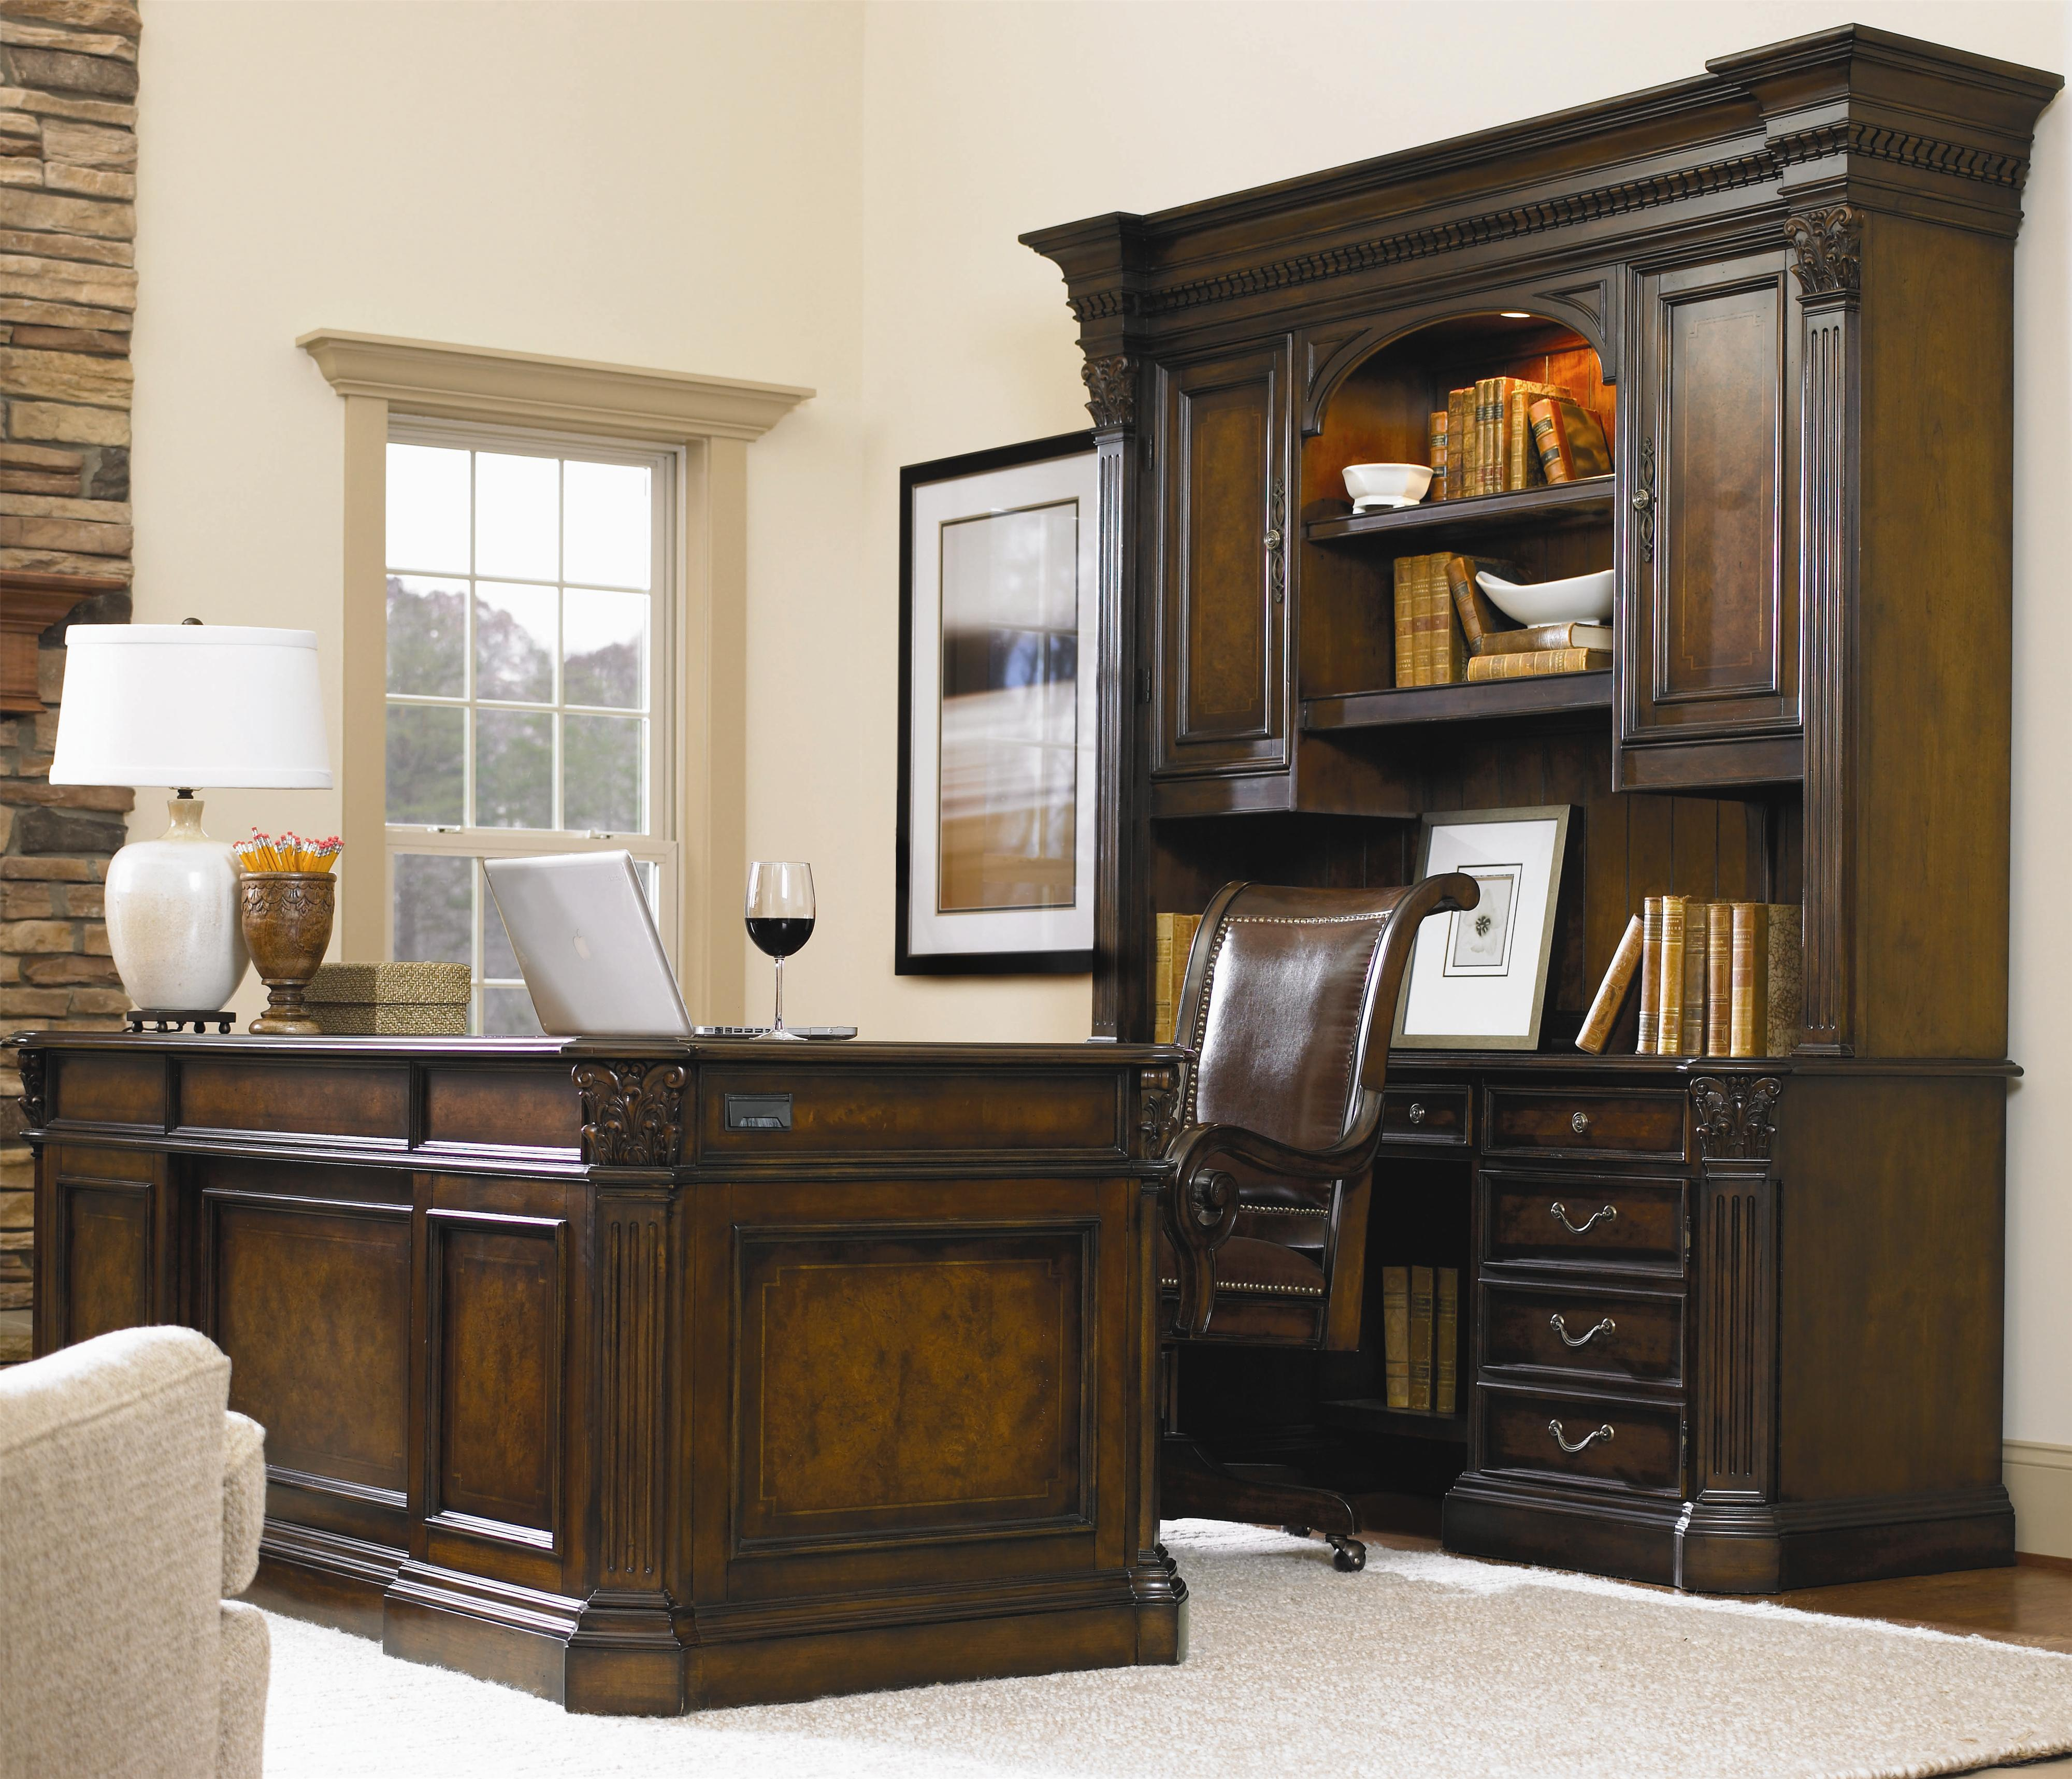 executive office ii european hooker iteminformation furniture home desk renaissance